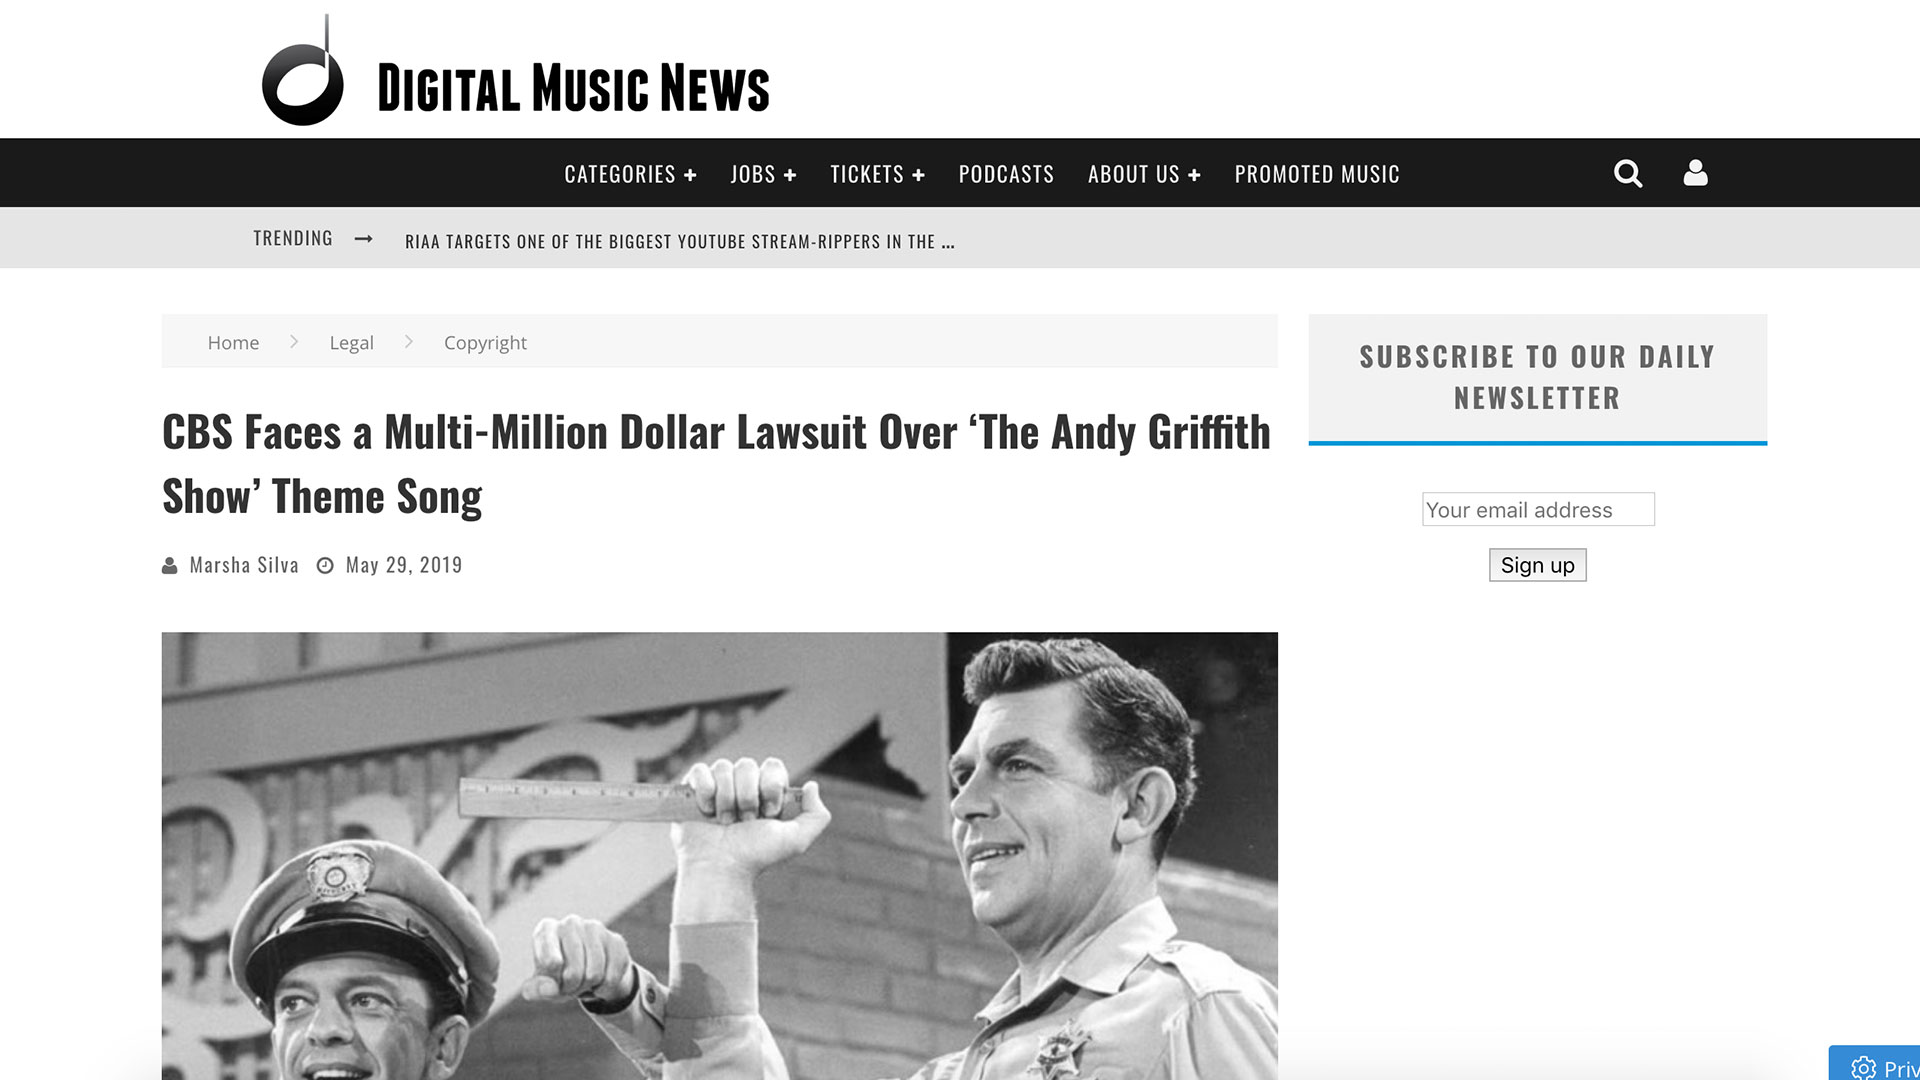 Fairness Rocks News CBS Faces a Multi-Million Dollar Lawsuit Over 'The Andy Griffith Show' Theme Song